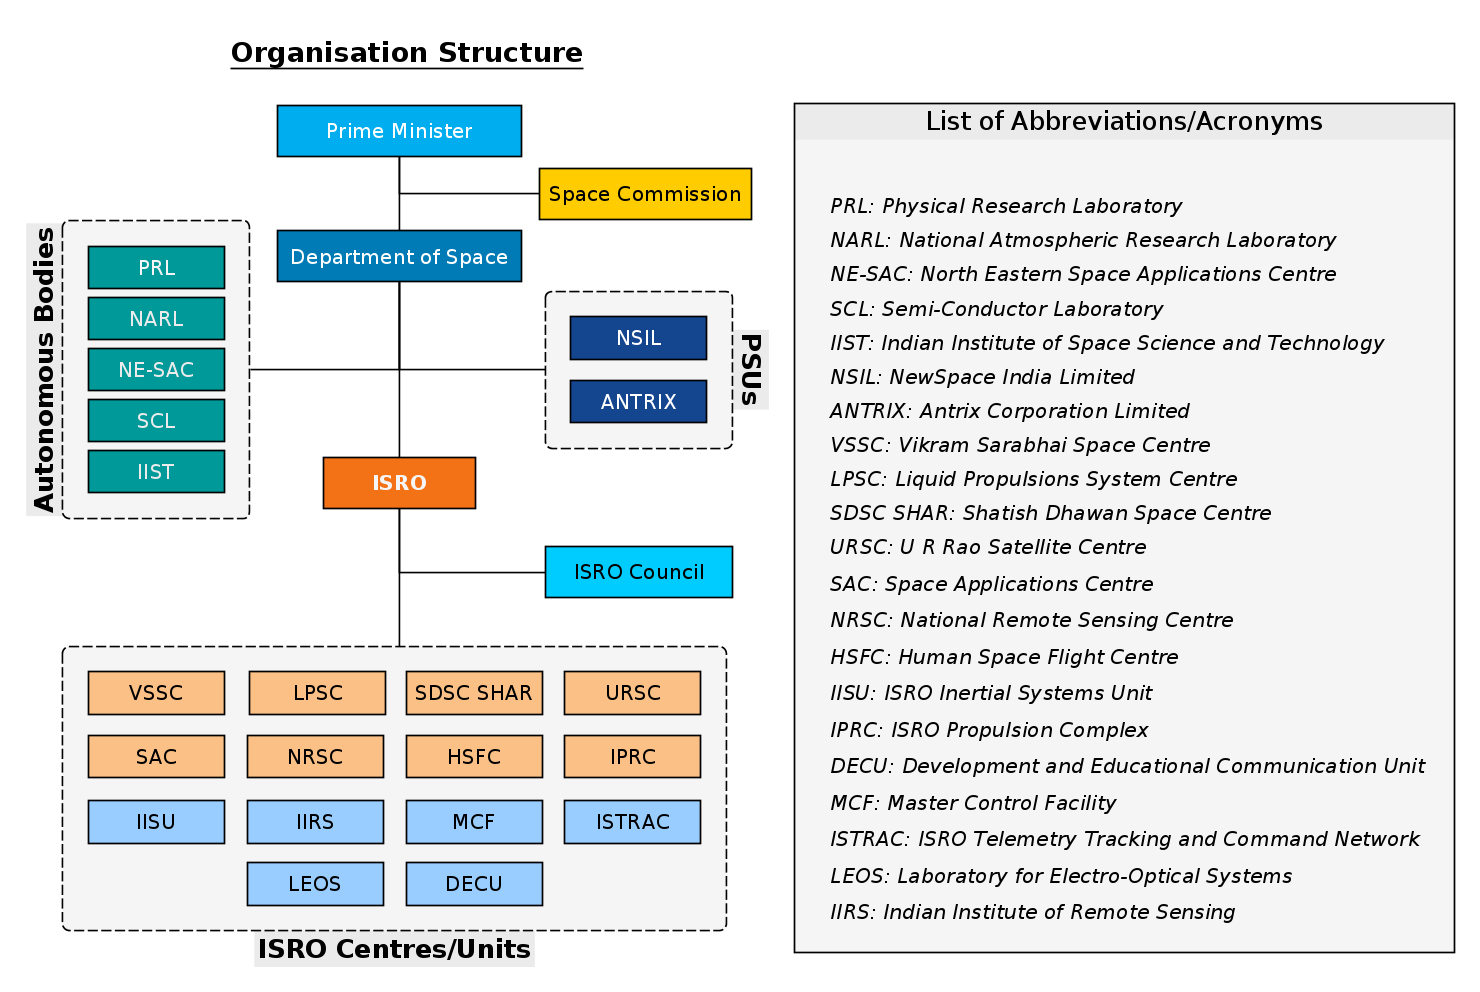 Template For Organizational Chart: Department of Space (India) - organization chart.jpg ,Chart